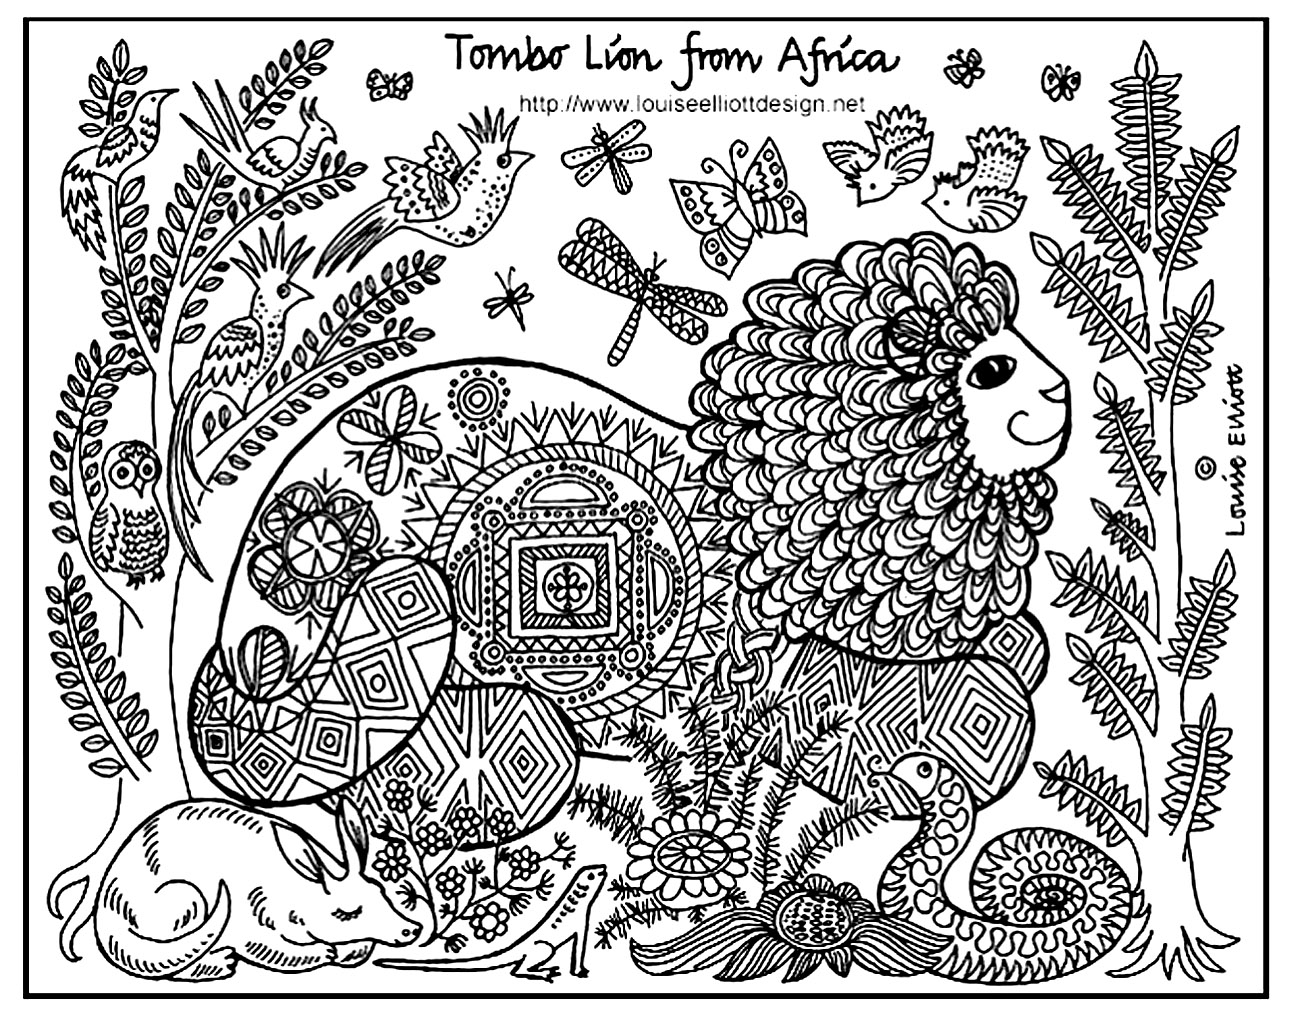 coloring africa africa coloring pages to download and print for free coloring africa 1 1